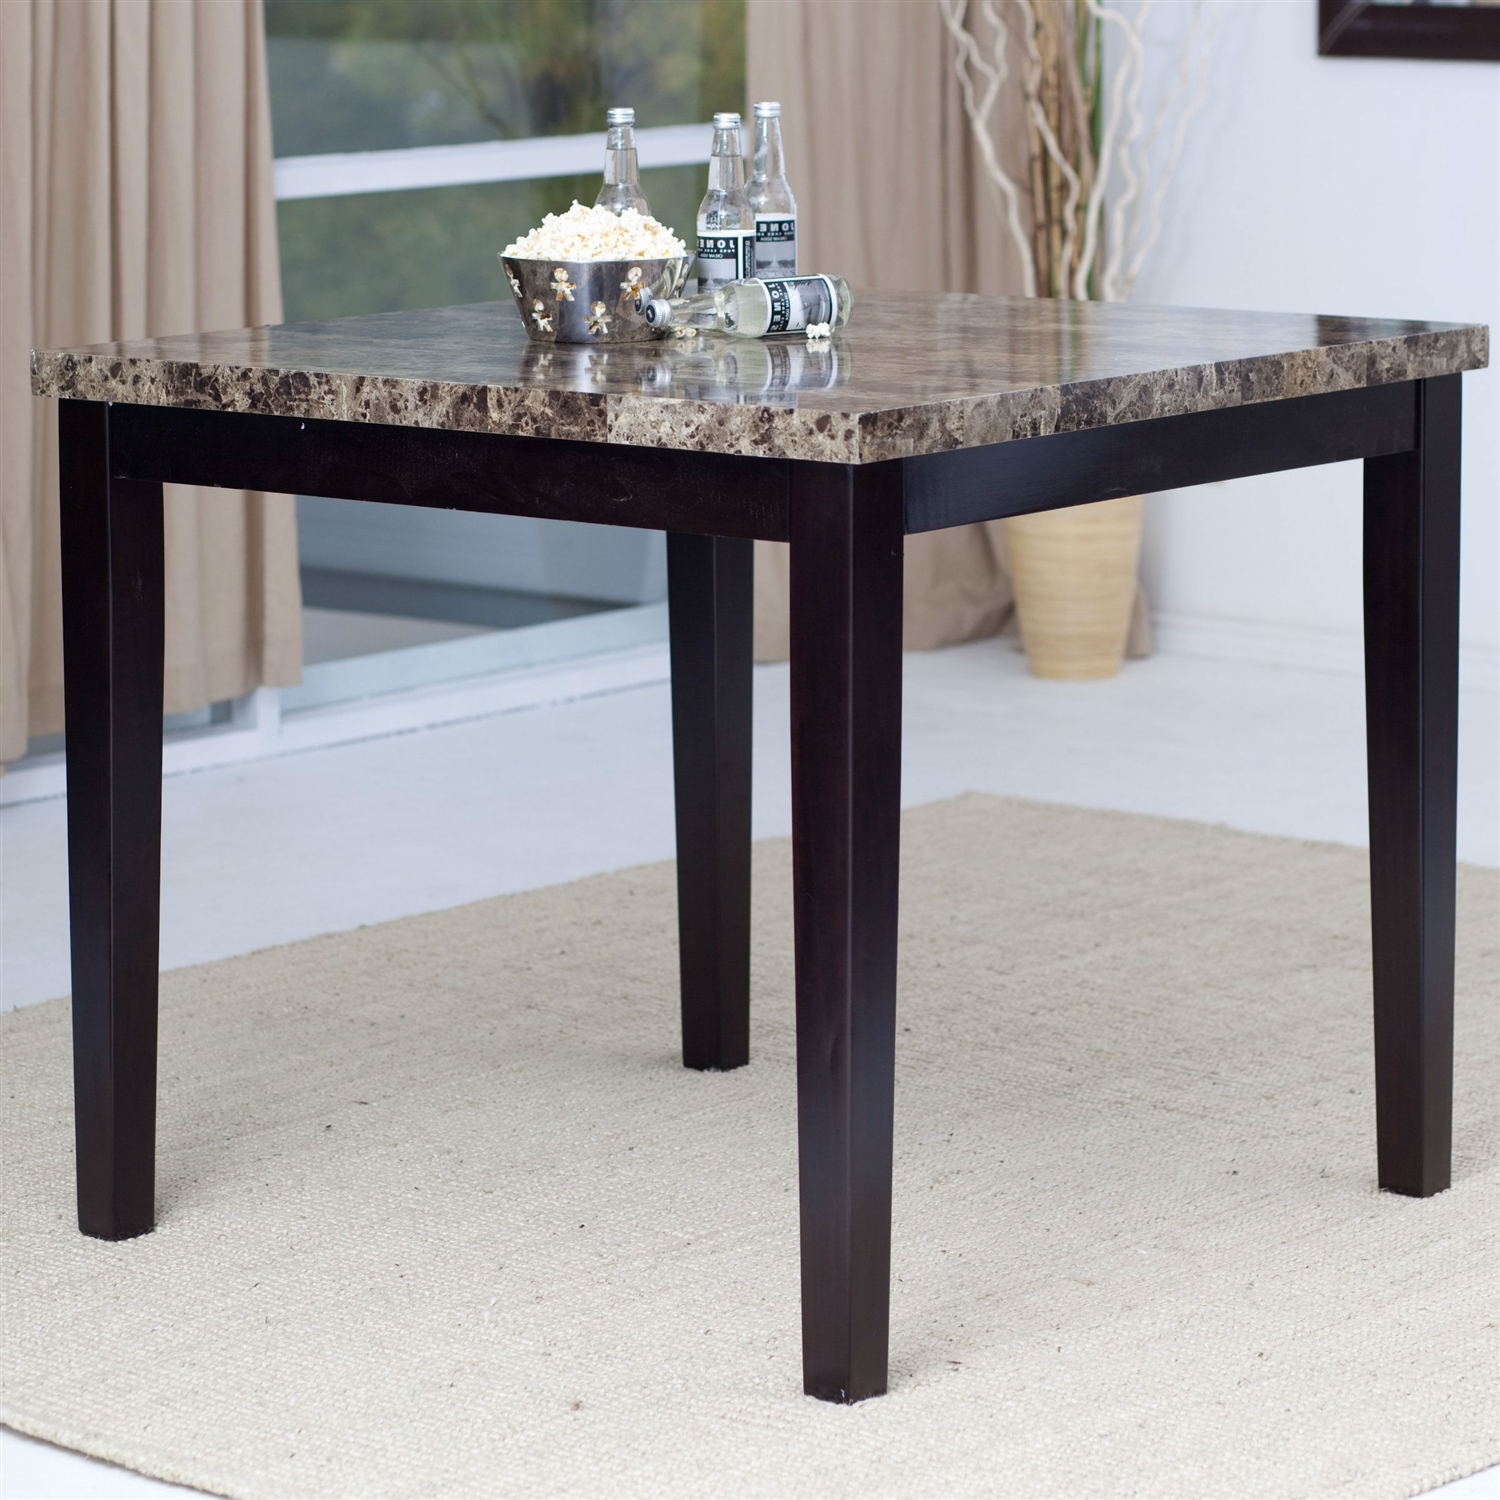 contemporary 42 x 42 inch counter height dining table with faux marble